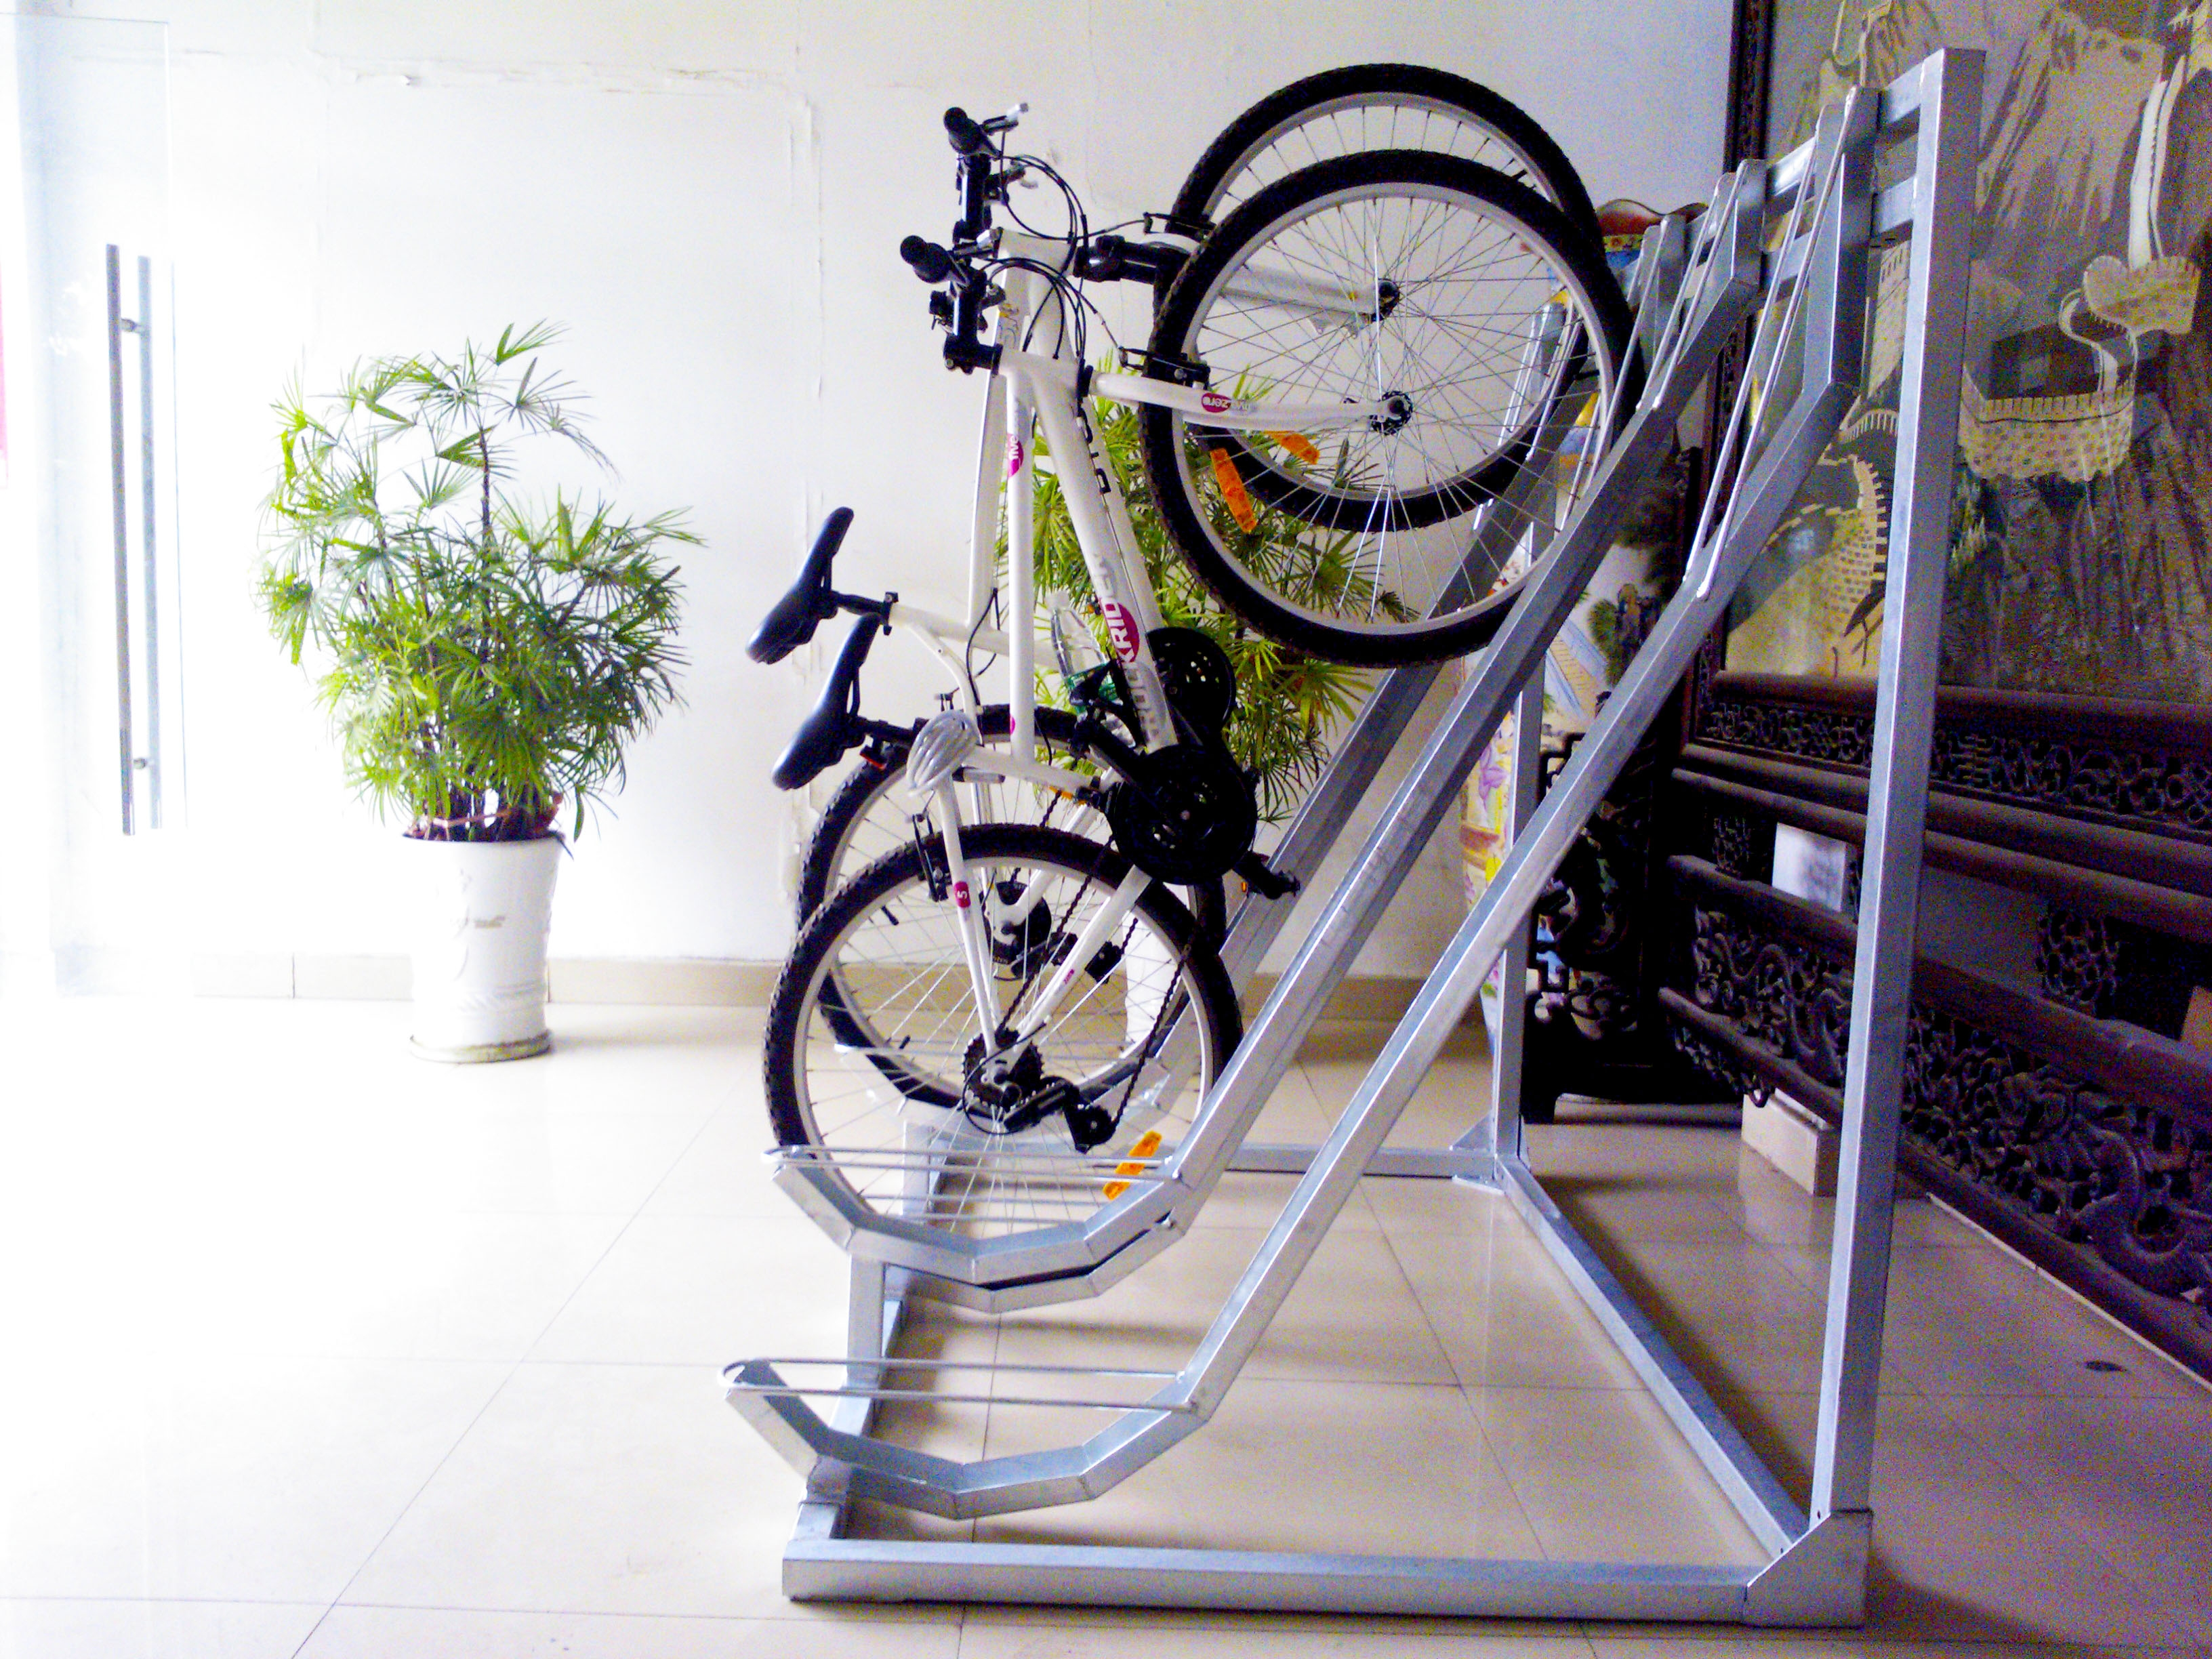 Outdoor 4 Bikes Galvanized Semi Bicycle Racks